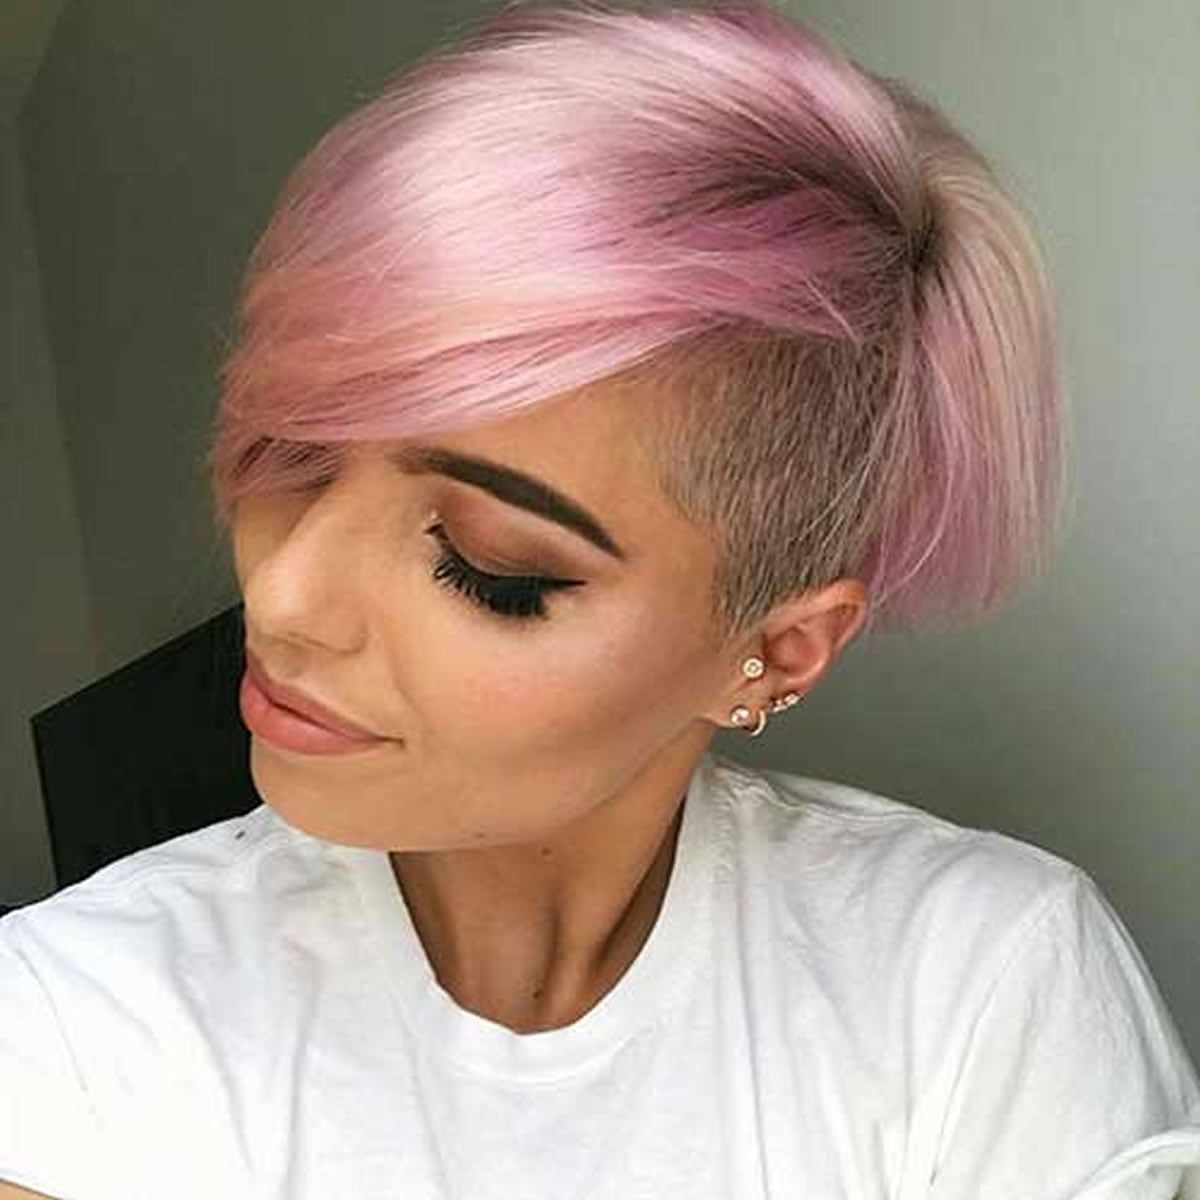 short haircuts and color 50 the coolest hairstyles and hair colors for 1814 | Short Hairstyles and Hair Colors for Women 2018 2019 20